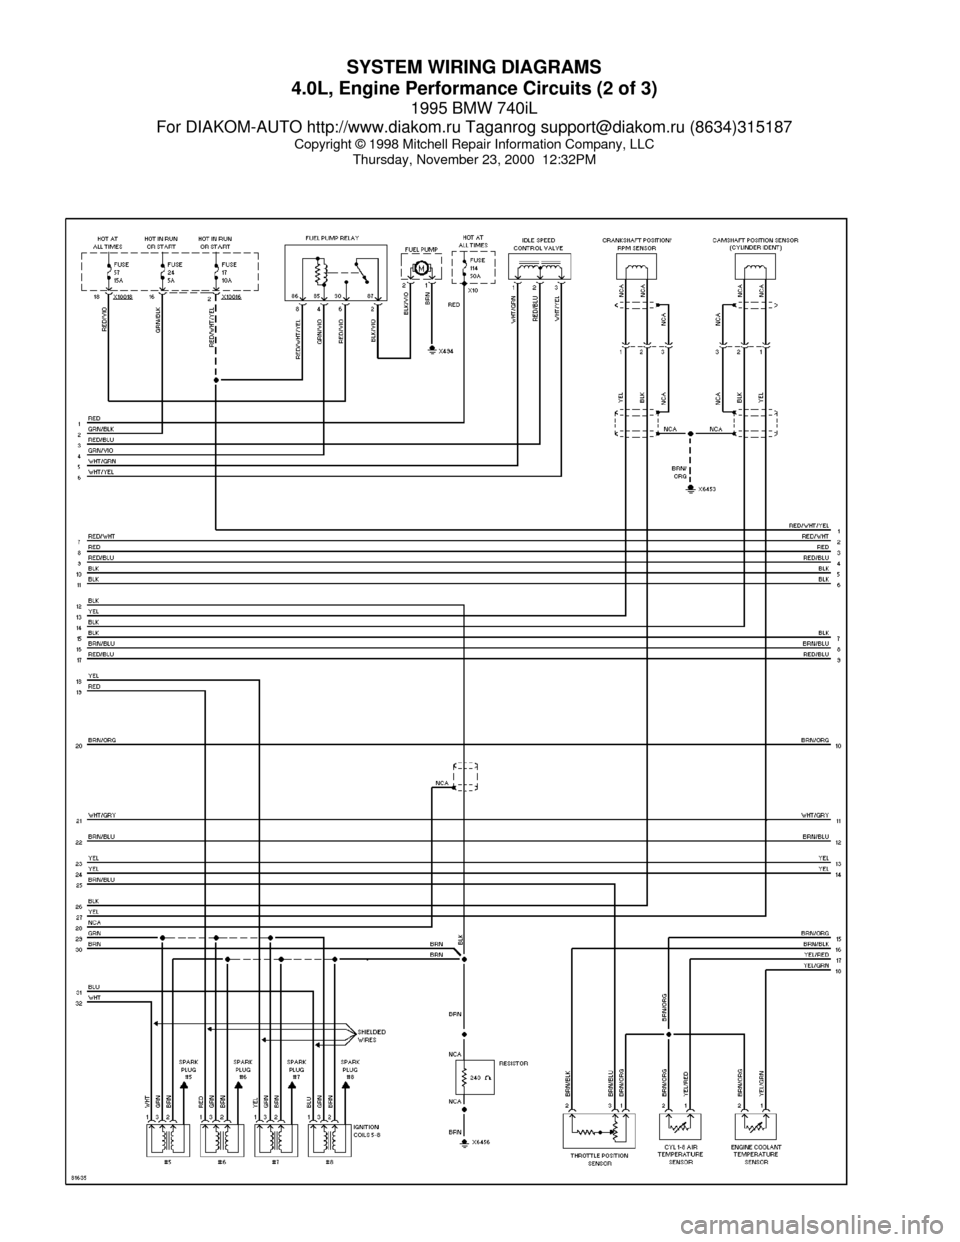 Bmw 2 Wiring Diagram Schematic 2019 E36 Ews 740il 1995 E38 System Diagrams Series R60